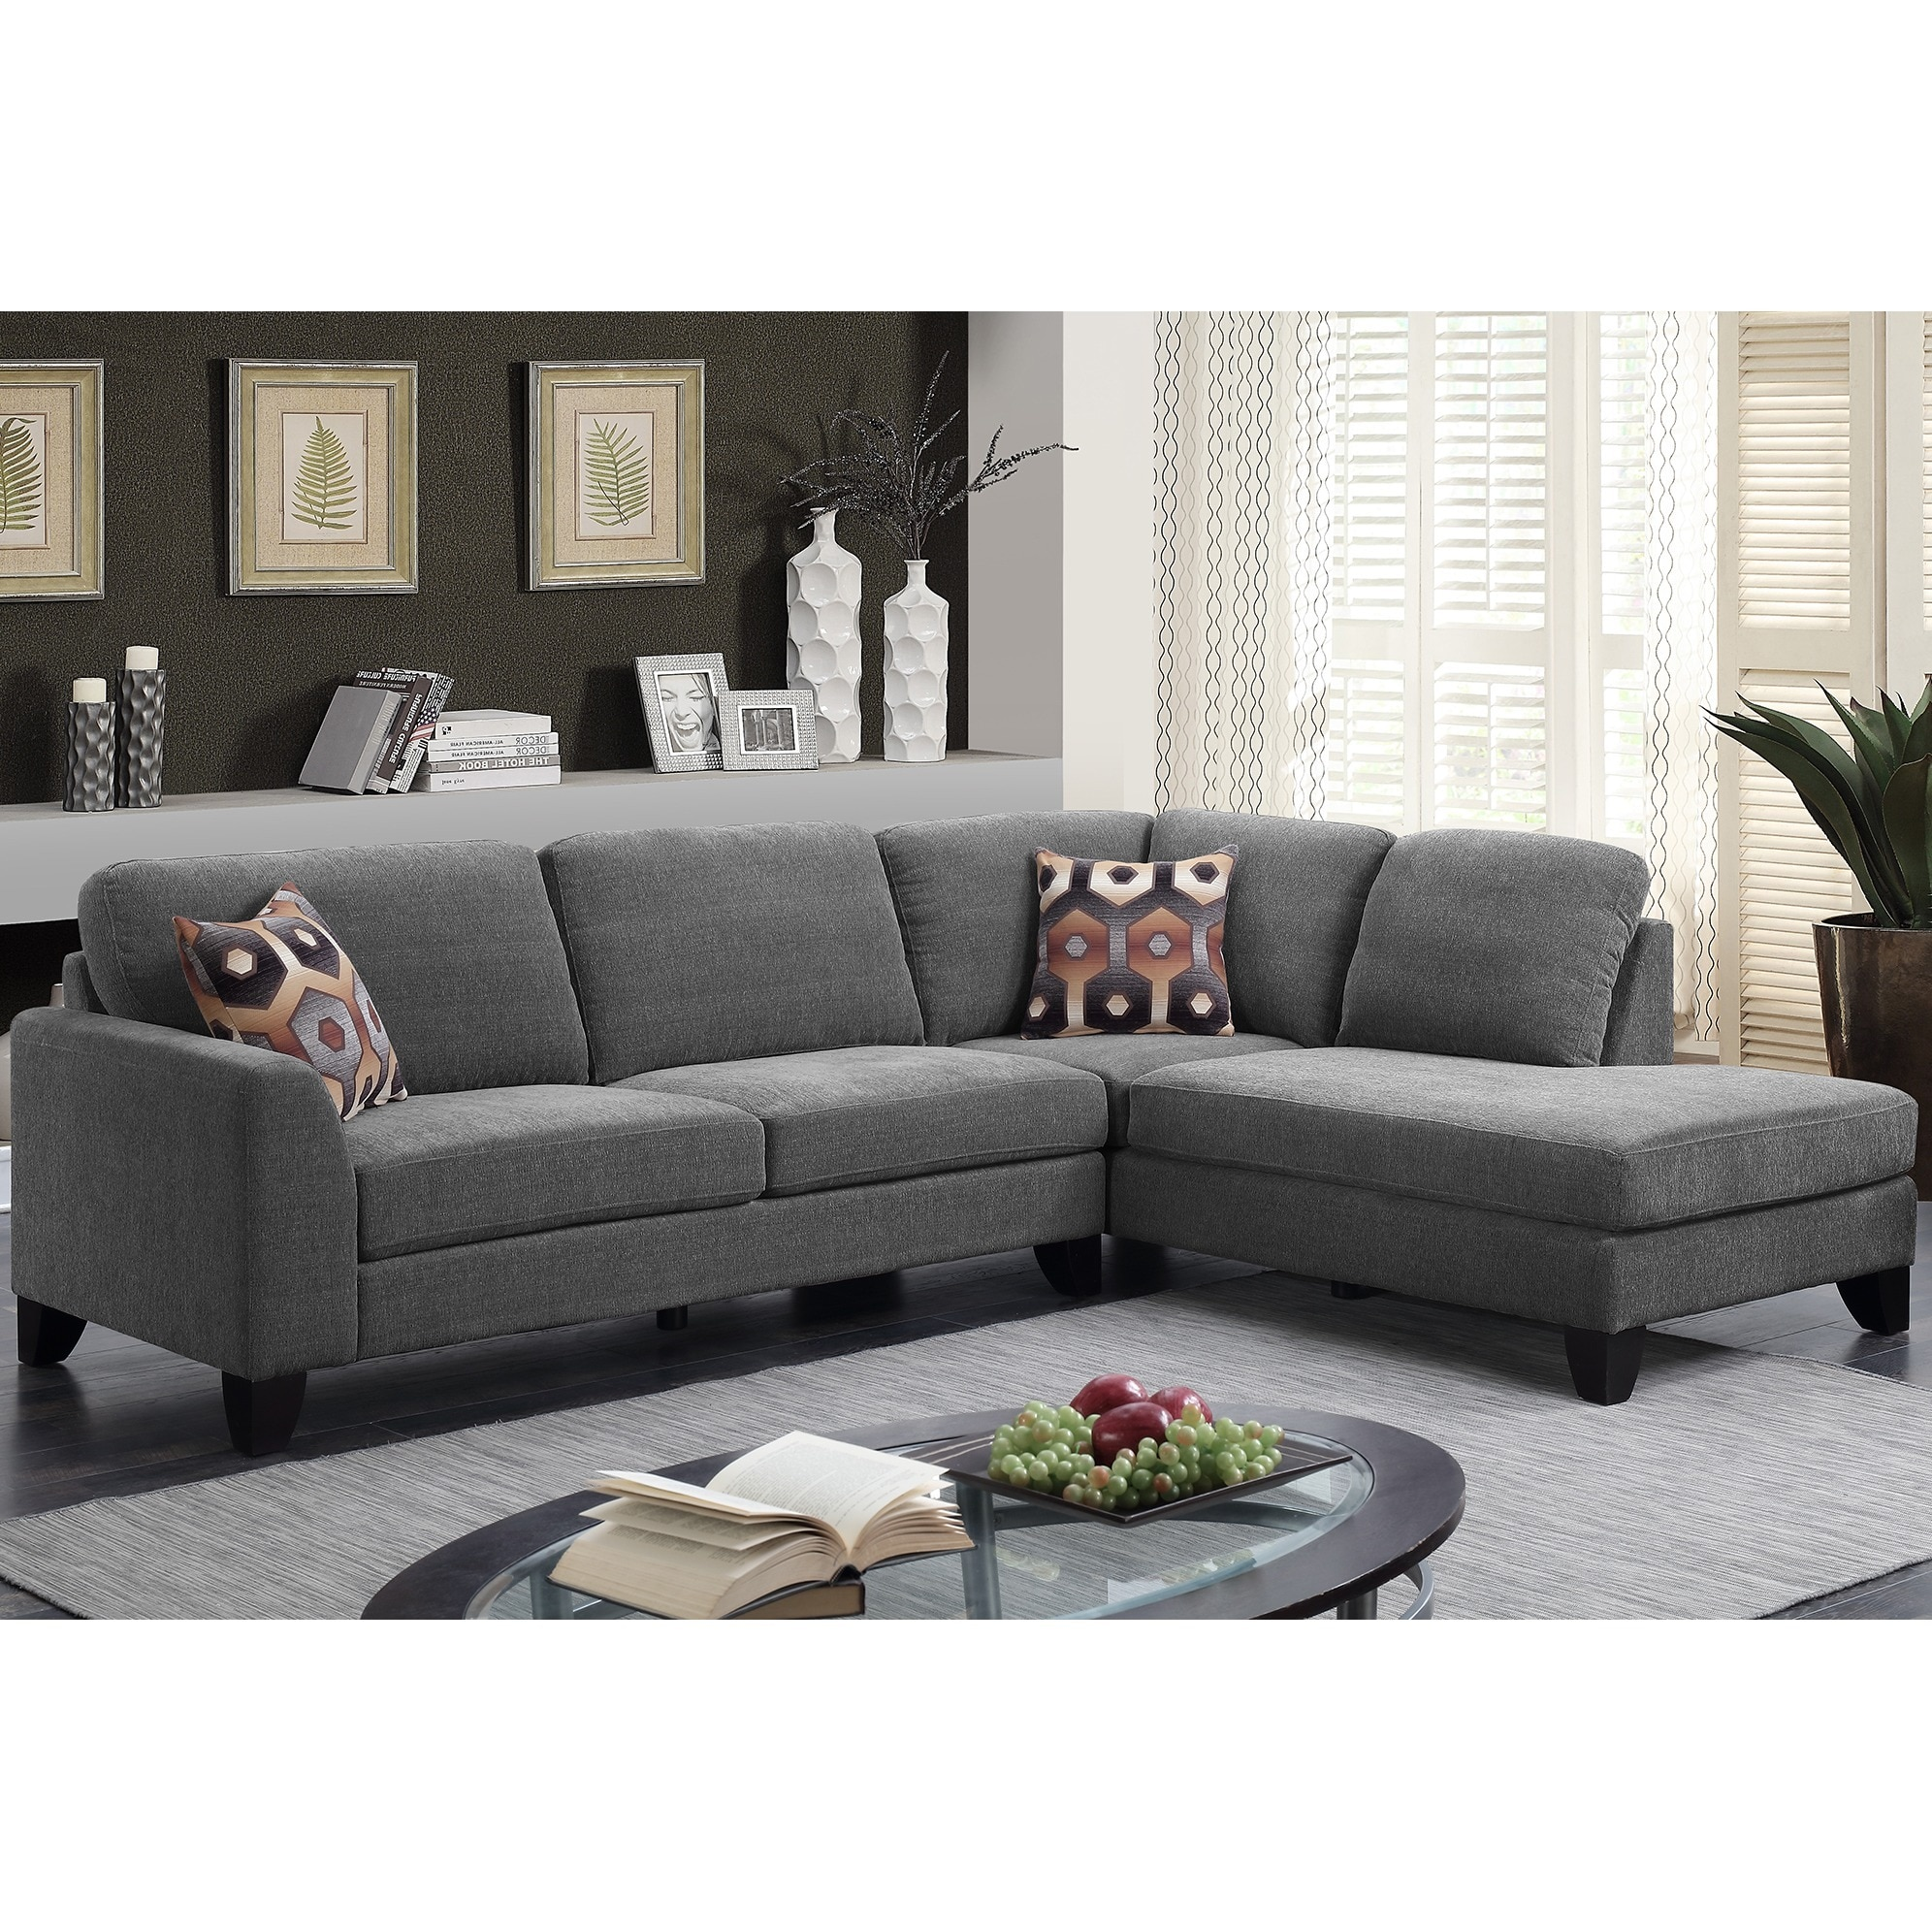 Shop Porter Monza Grey Chenille Sectional Sofa With Optional Geometric  Ottoman   Free Shipping Today   Overstock.com   14037014